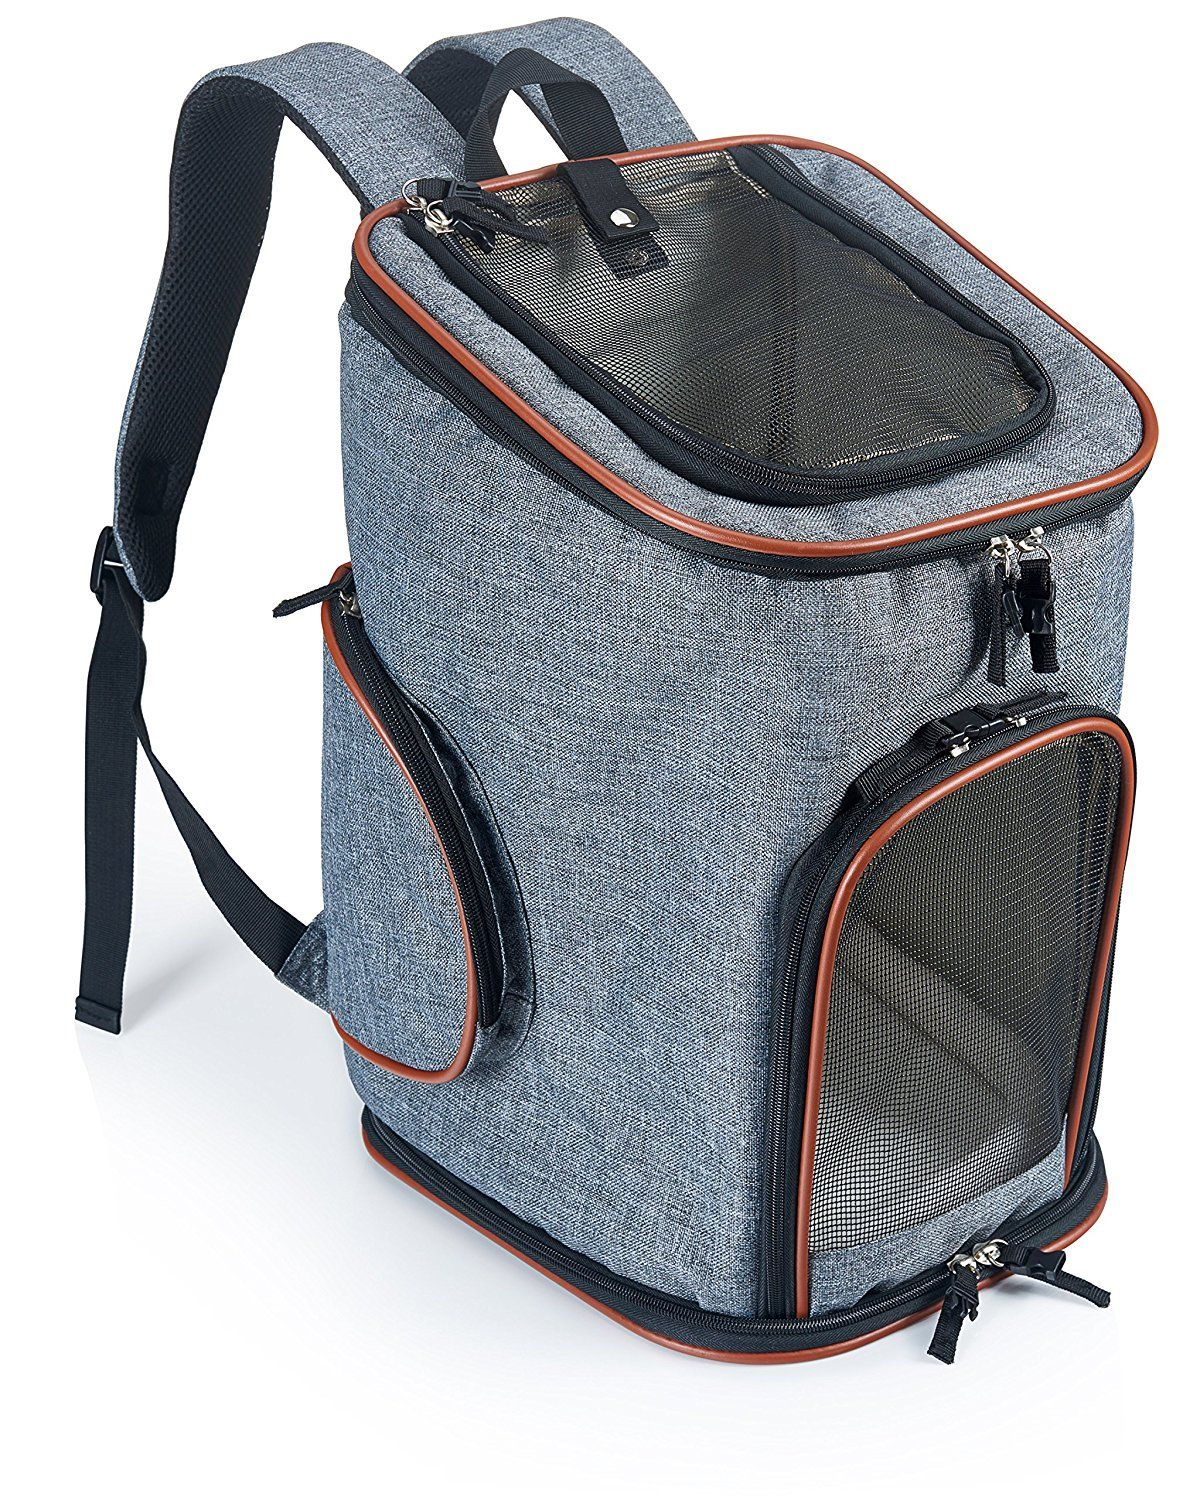 Soft-Sided Pet Carrier Backpack for Small Dogs and Cats by Pawfect Pets-  Airline-Approved, Designed for Travel, Hiking, Walking and Outdoor Use      Read ... 60bc0675e5